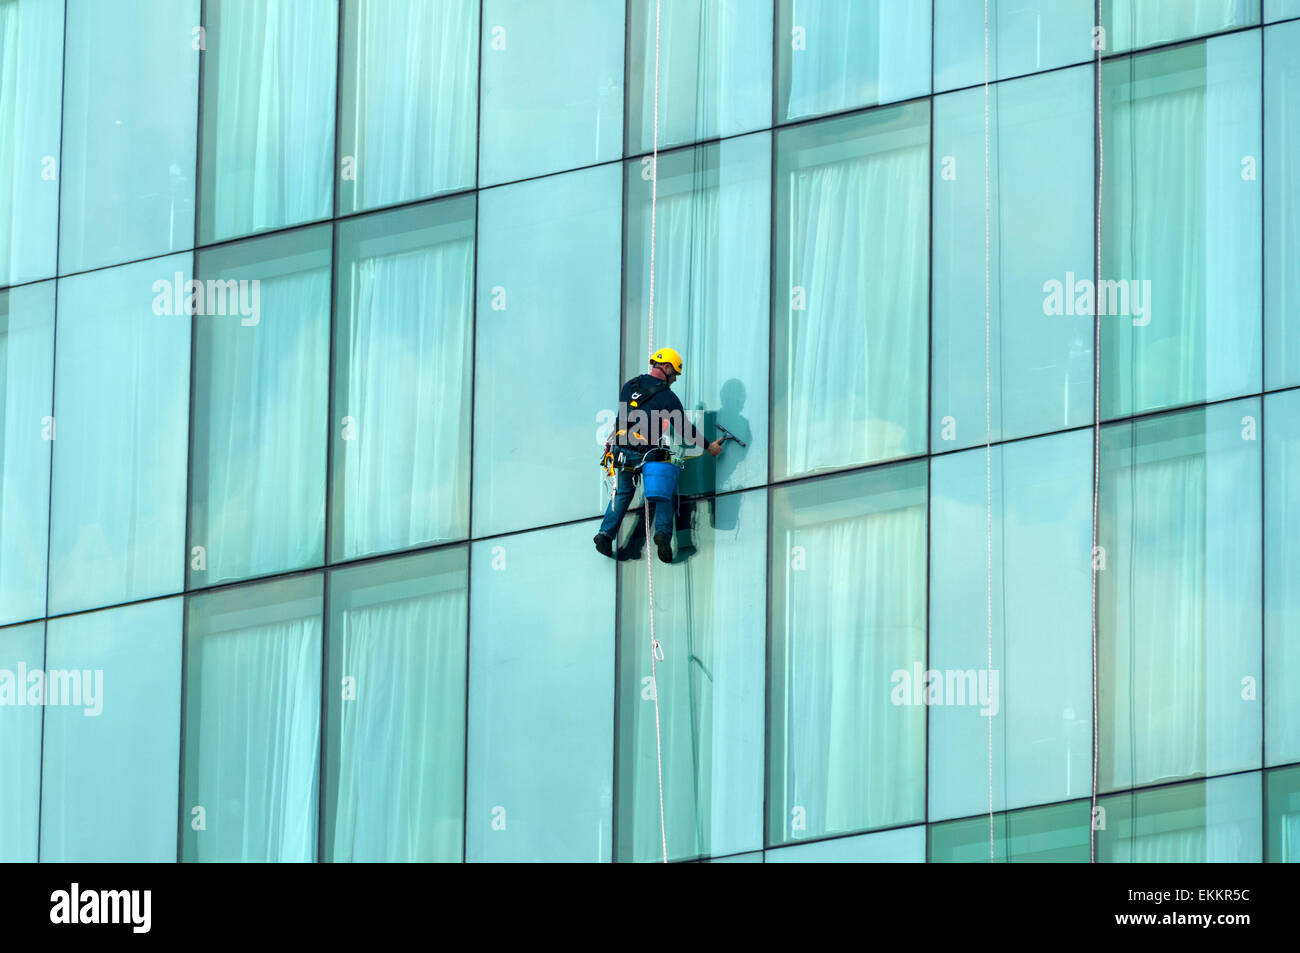 Window cleaner suspended on a rope on the Beetham Tower, Deansgate, Manchester, England, UK - Stock Image